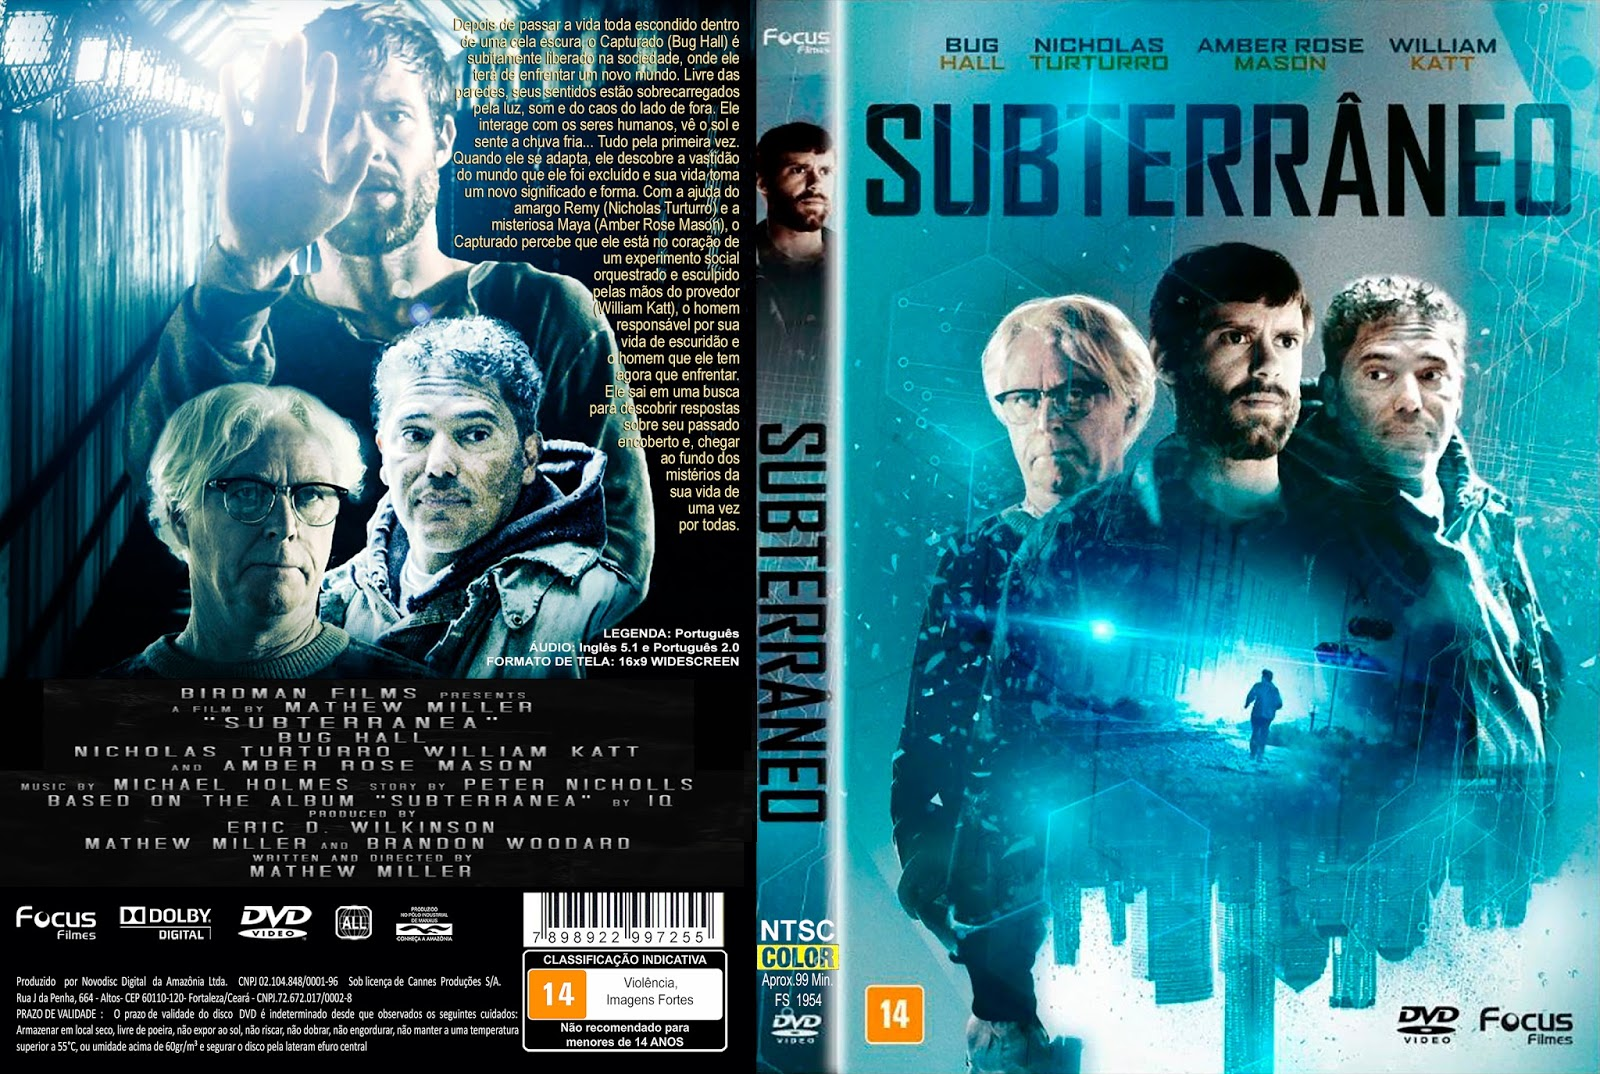 Download Subterrâneo DVD-R Download Subterrâneo DVD-R Subterr 25C3 25A2neo 2B  2BCAPA